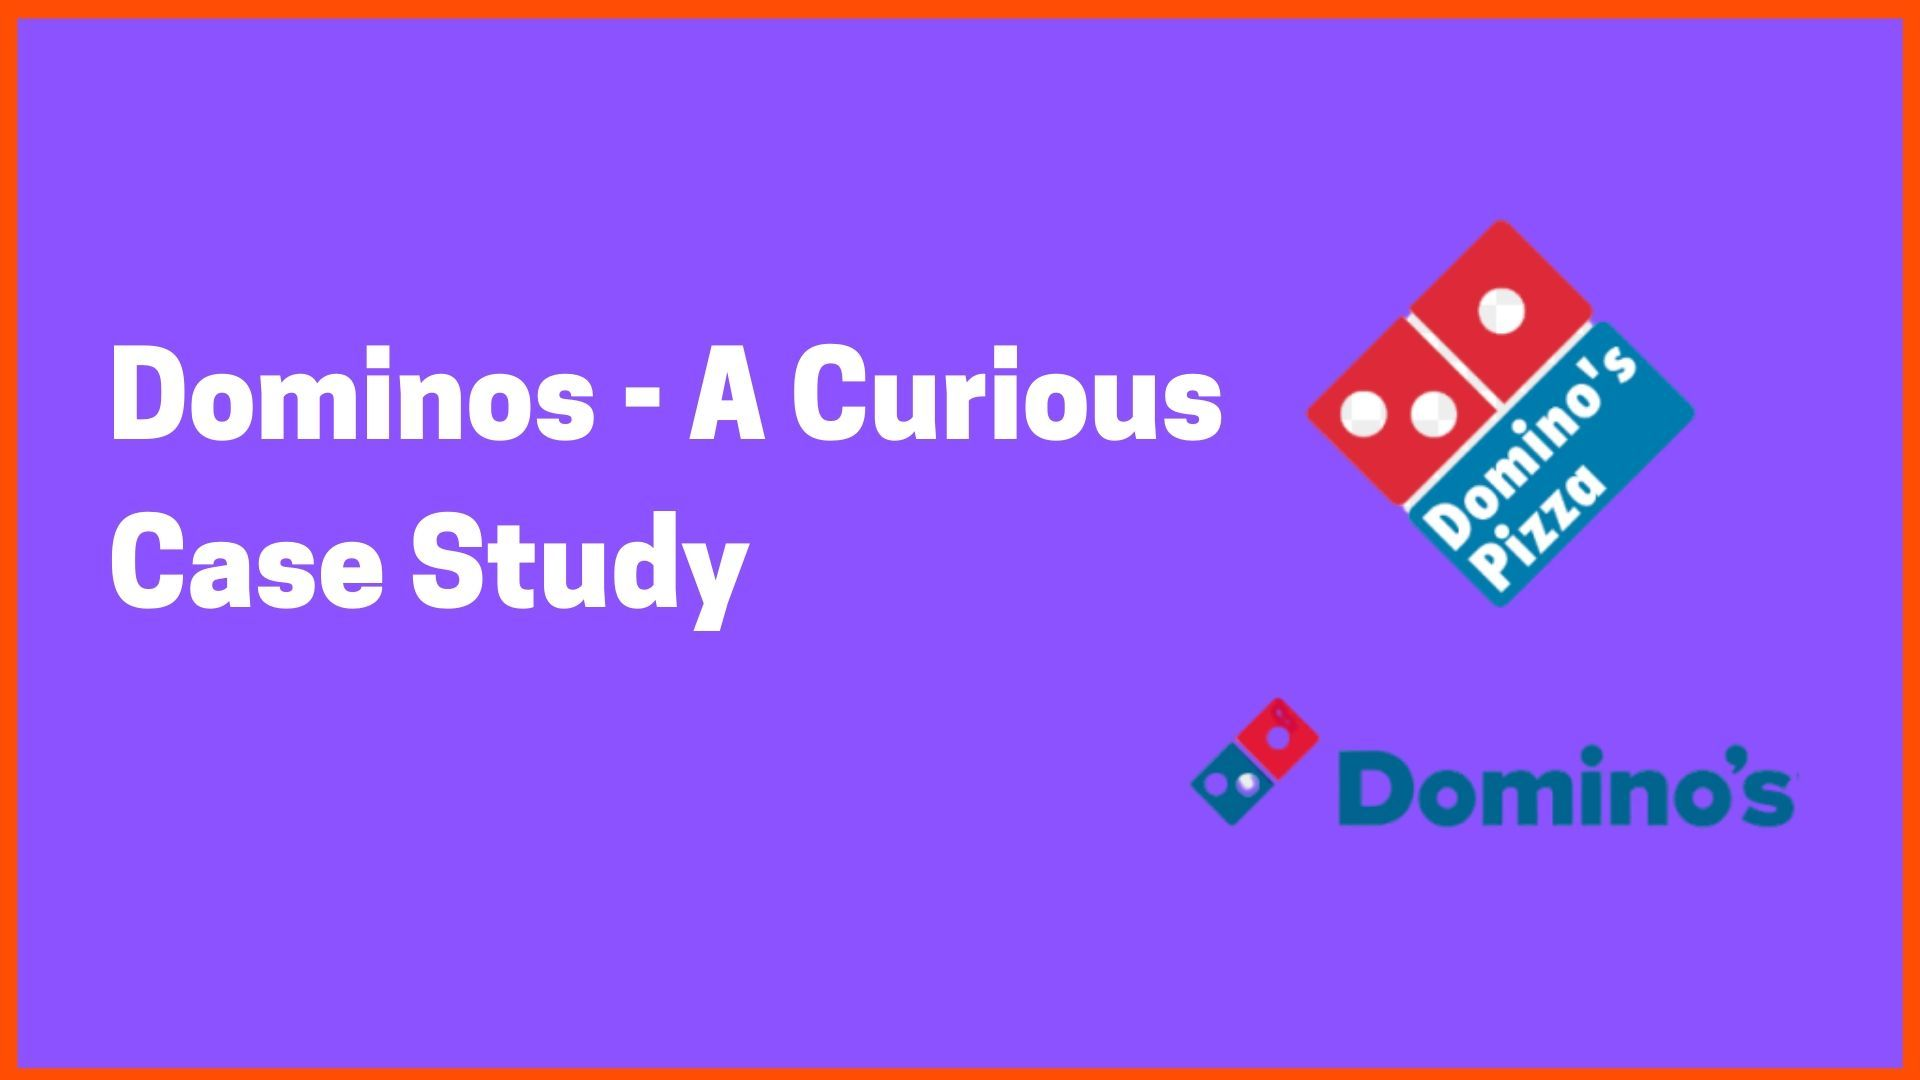 Dominos - A Curious Case Study